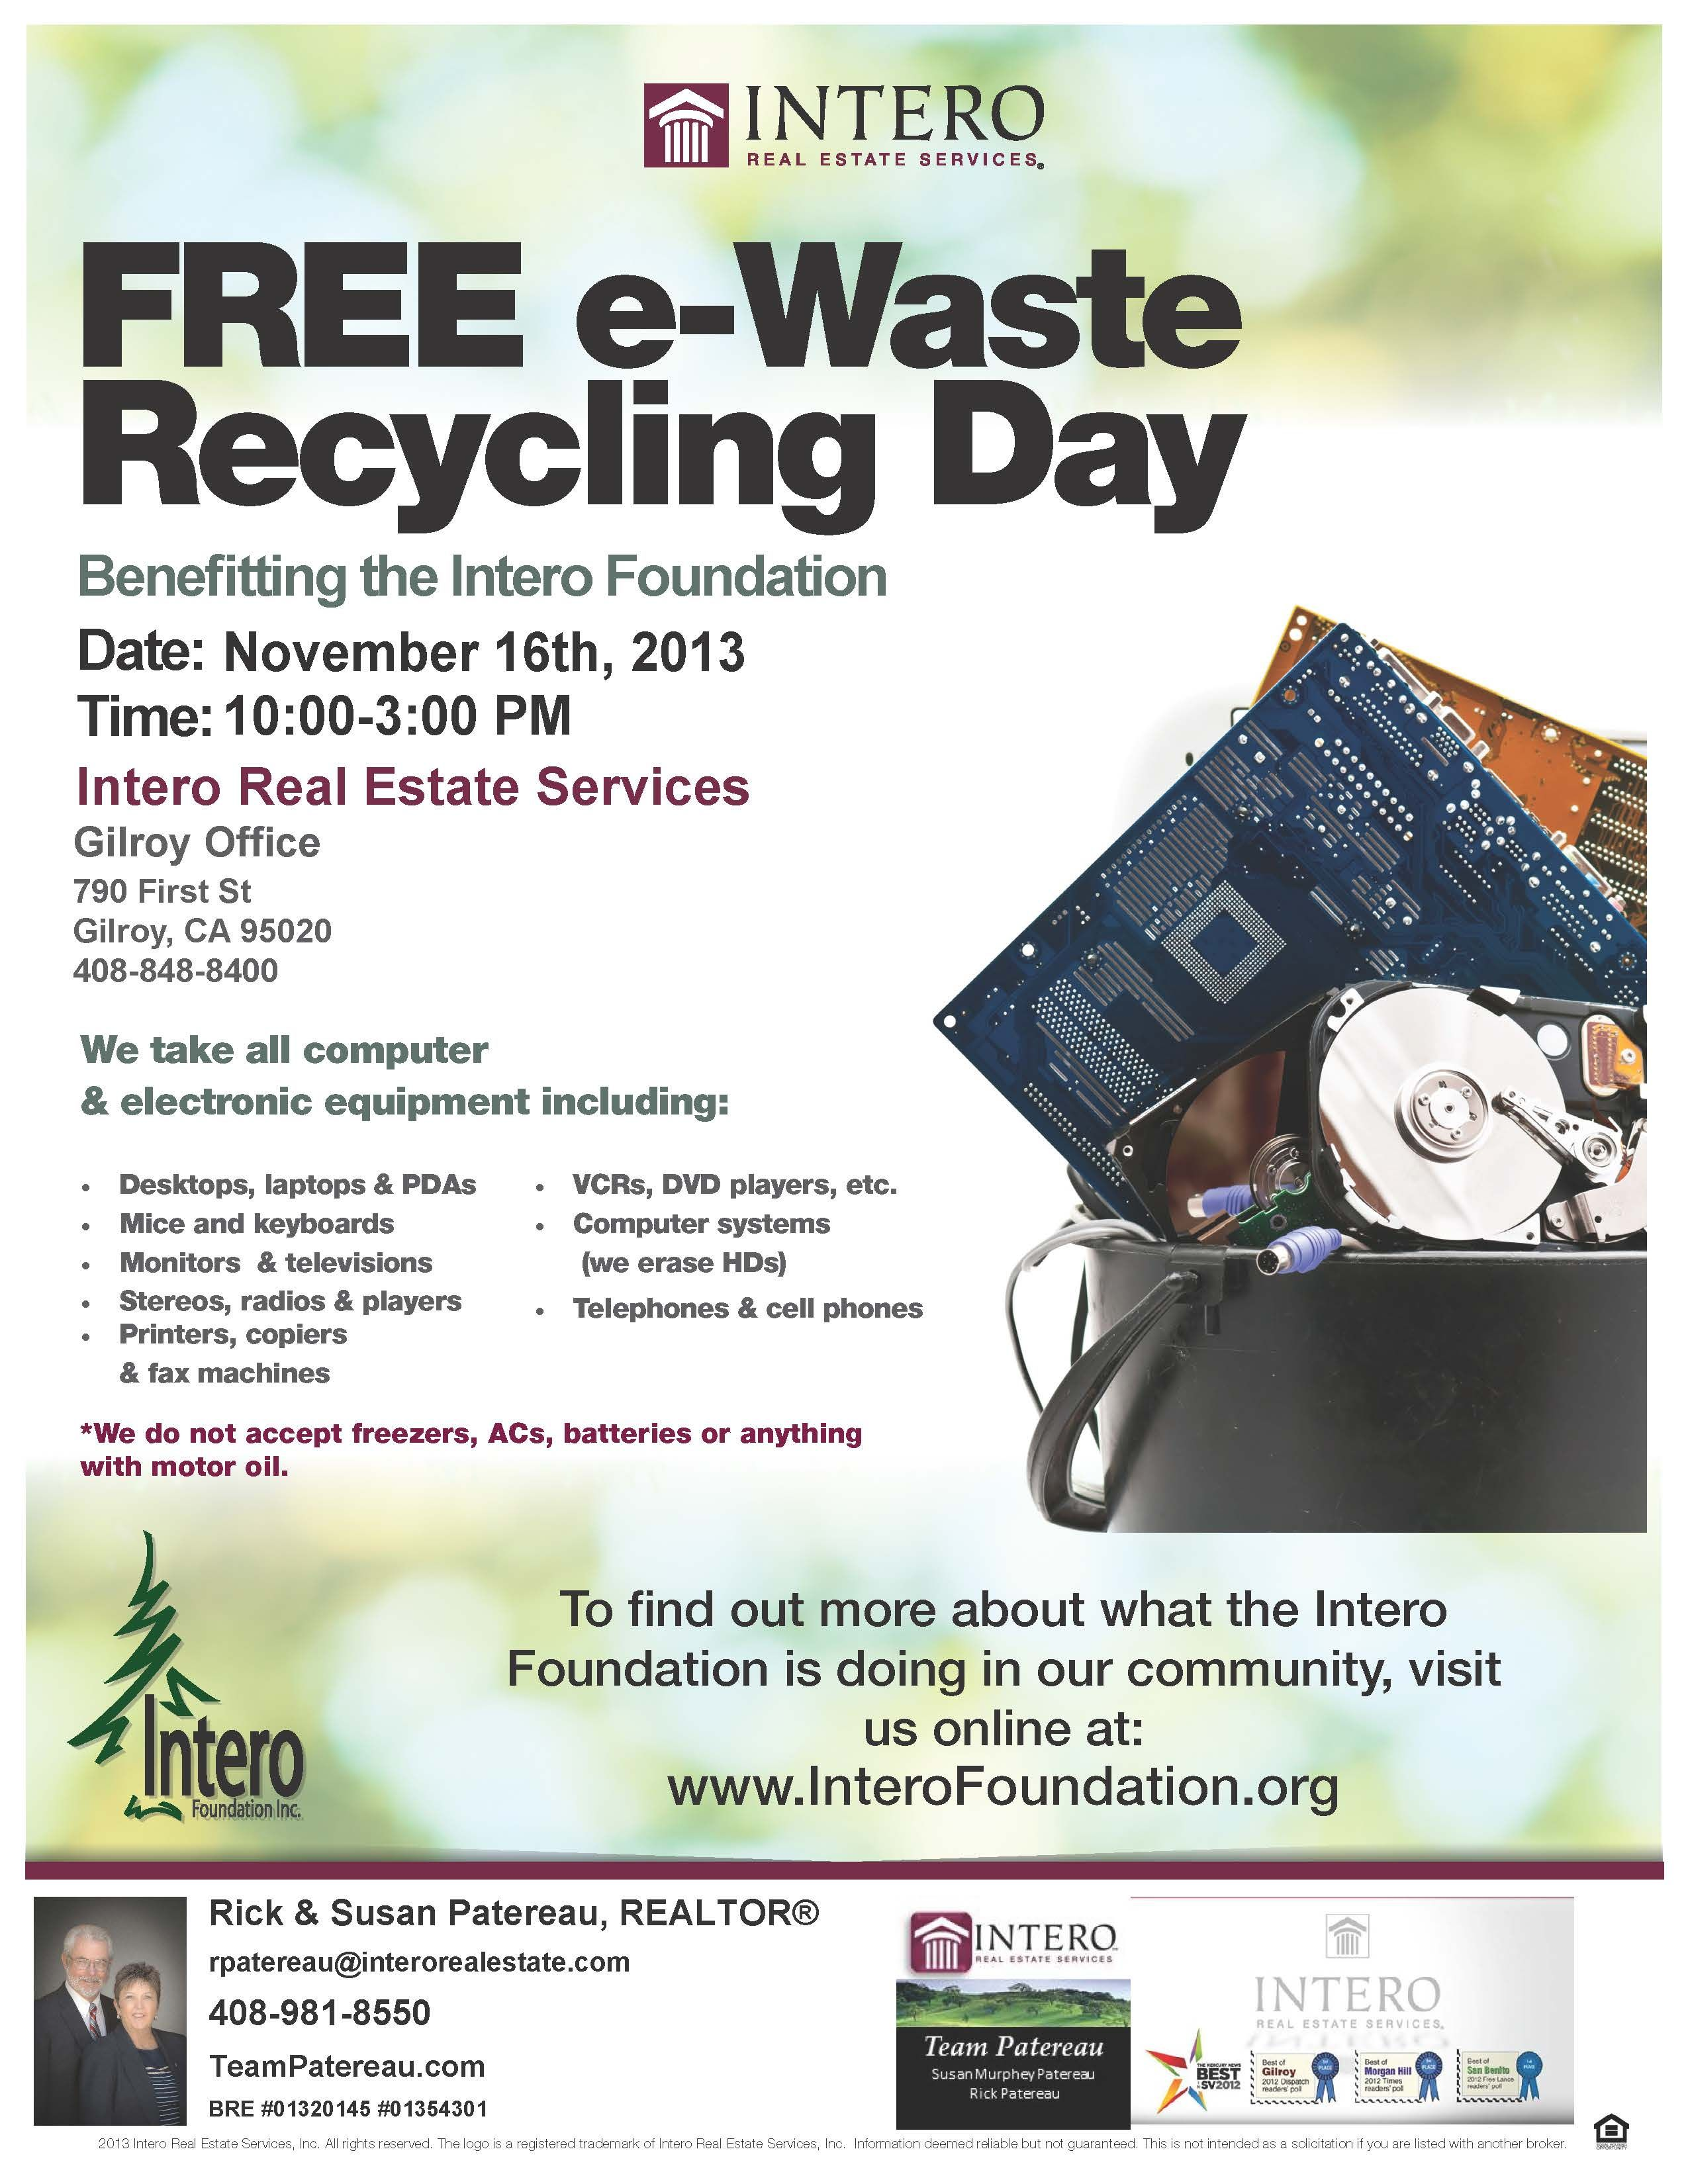 Drop off all your castoff electronics at Intero Real